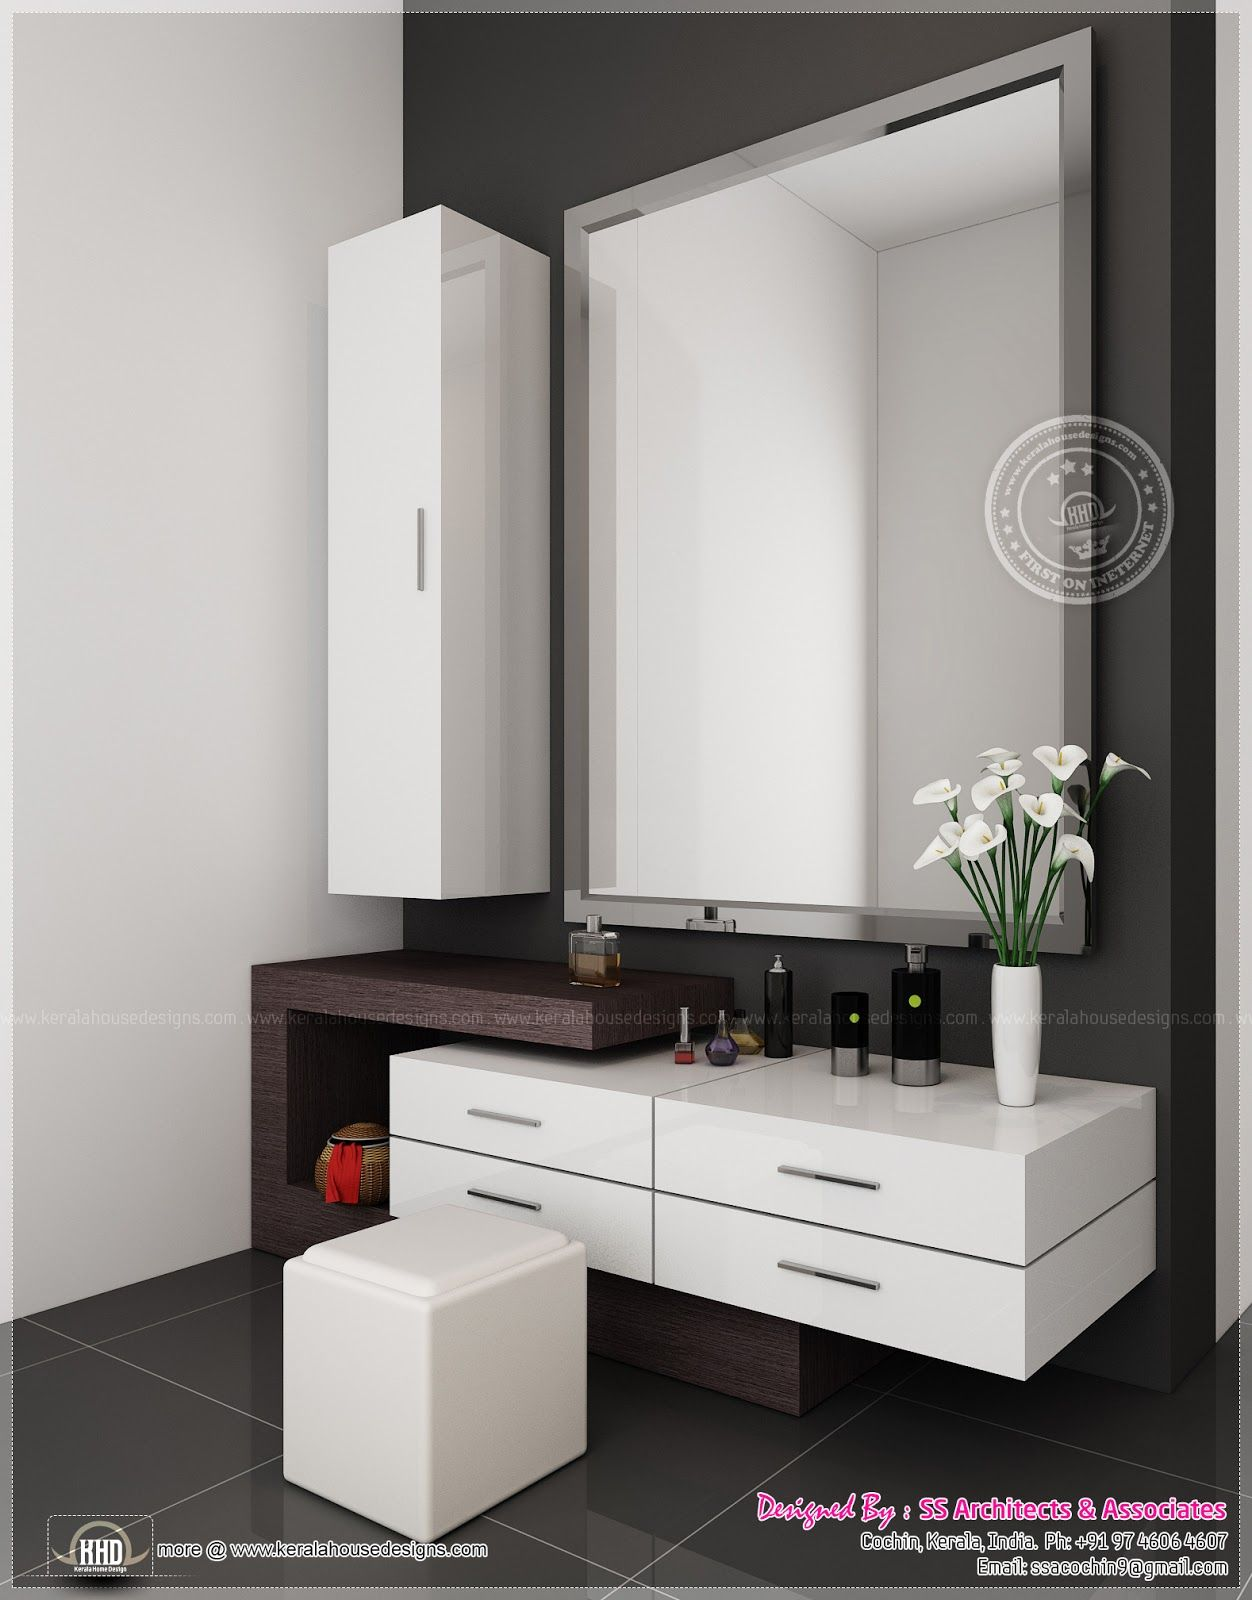 Dressing table designs with full length mirror for girls - Cool Dressing Table Design Designs Small For Bedroom With Almirah Simple Full Length Mirror In Wood